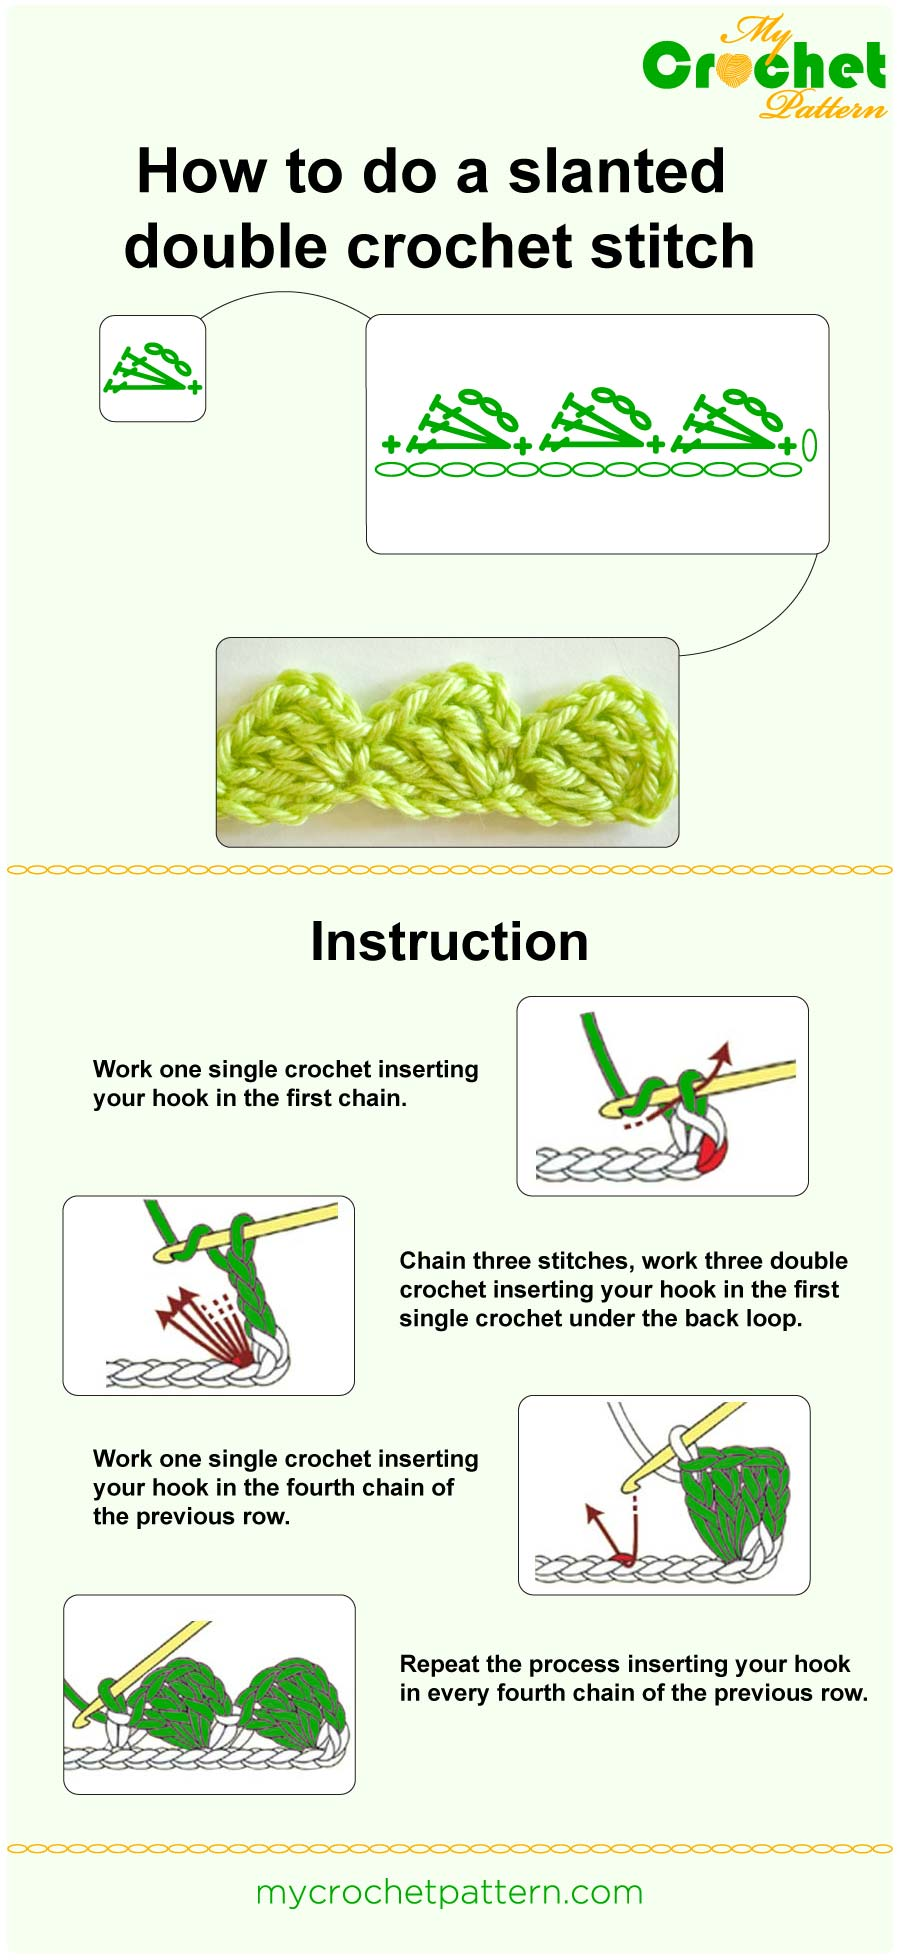 how to do a slanted double crochet stitch - infographic